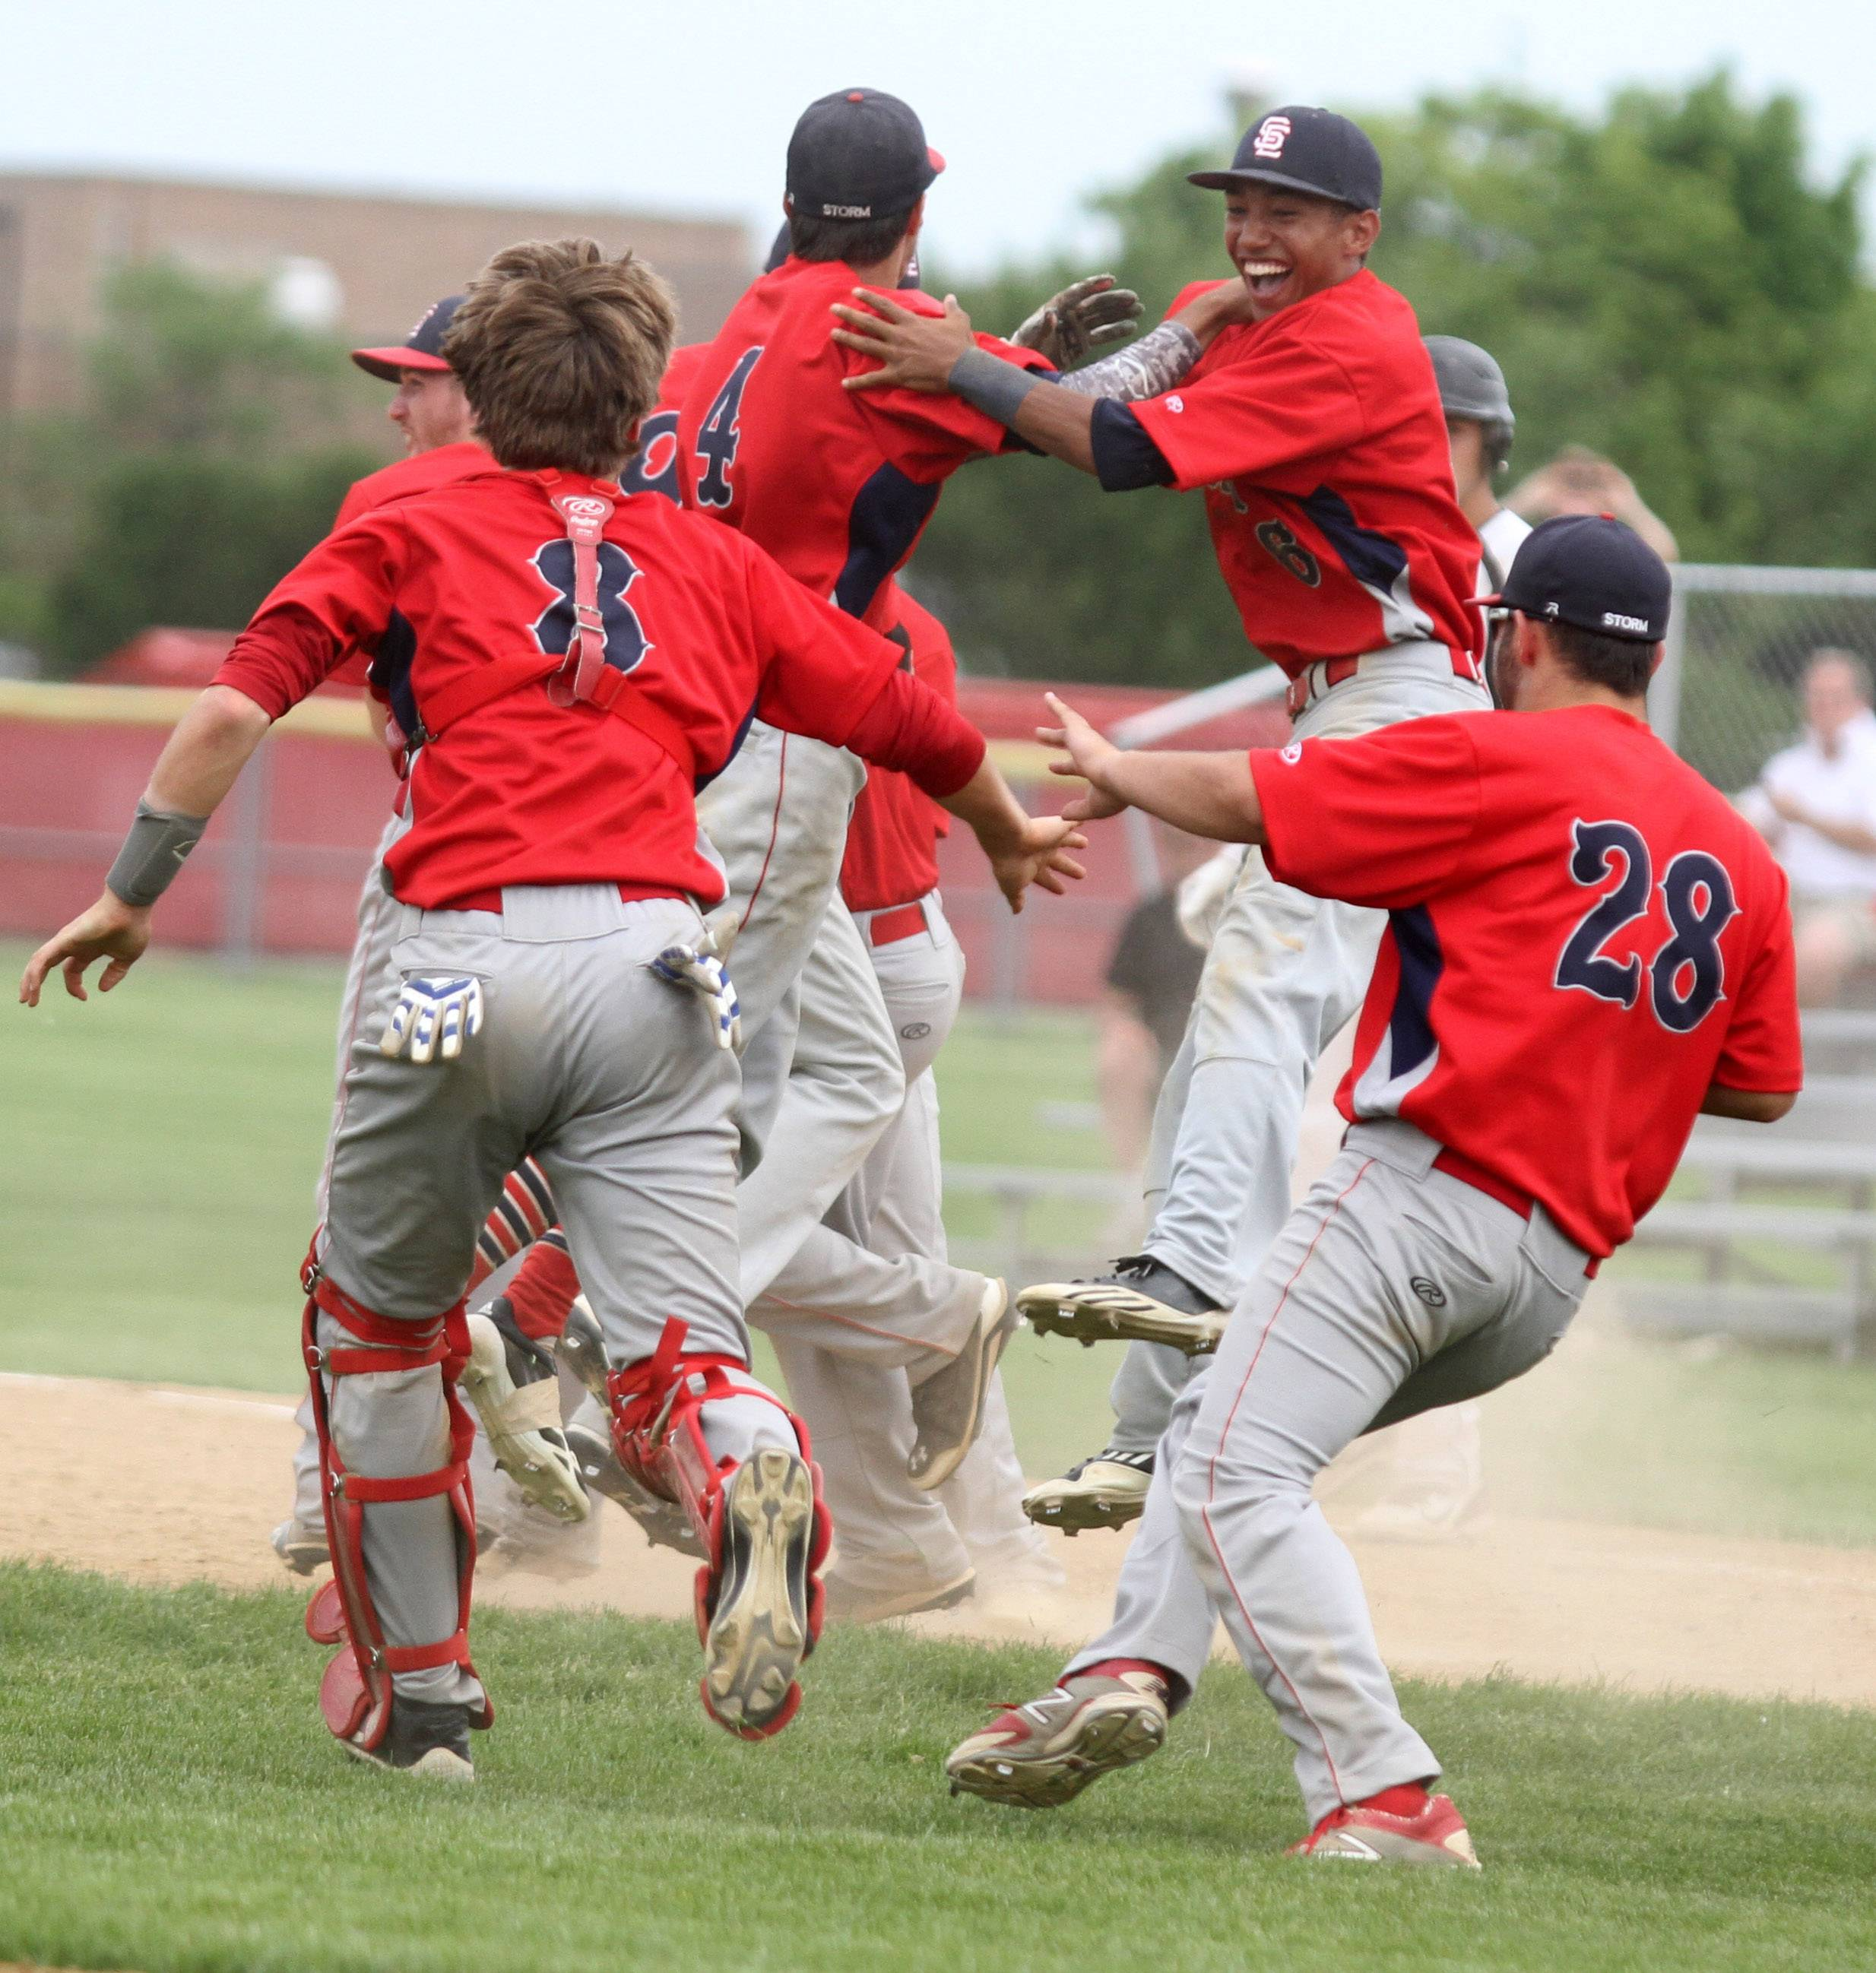 South Elgin catcher Nate Brummel (8) and infielder Antonio Danesi (28) rush the field as South Elgin tops Batavia 8-3 in the Schaumburg sectional championship game Saturday.